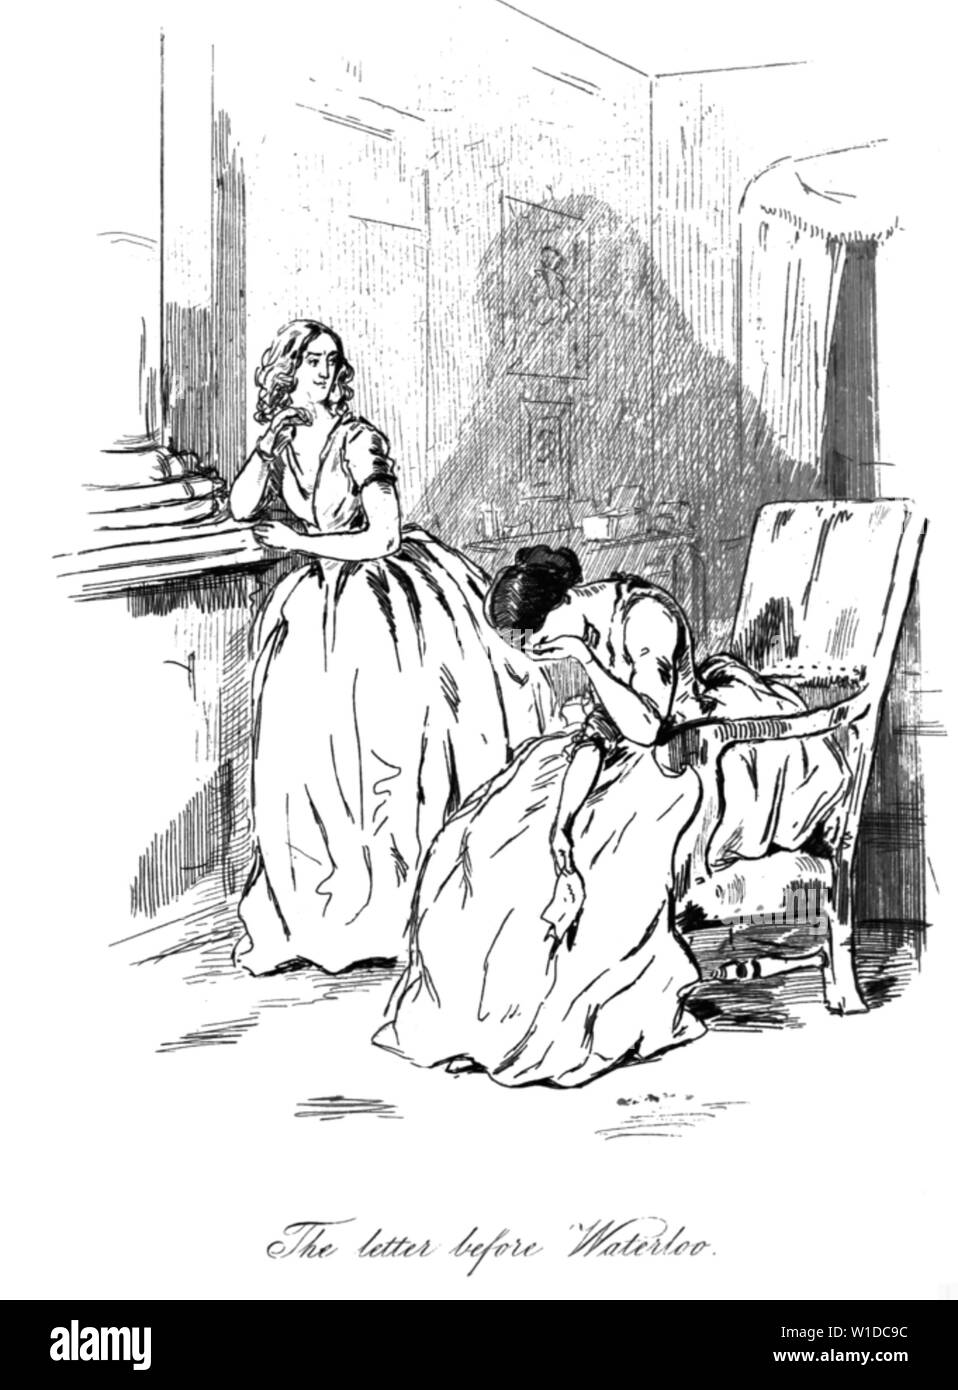 WILLIAM MAKEPEACE THACKERAY (1811-1863) British novelist. One of his engravings for Vanity Fair. Stock Photo